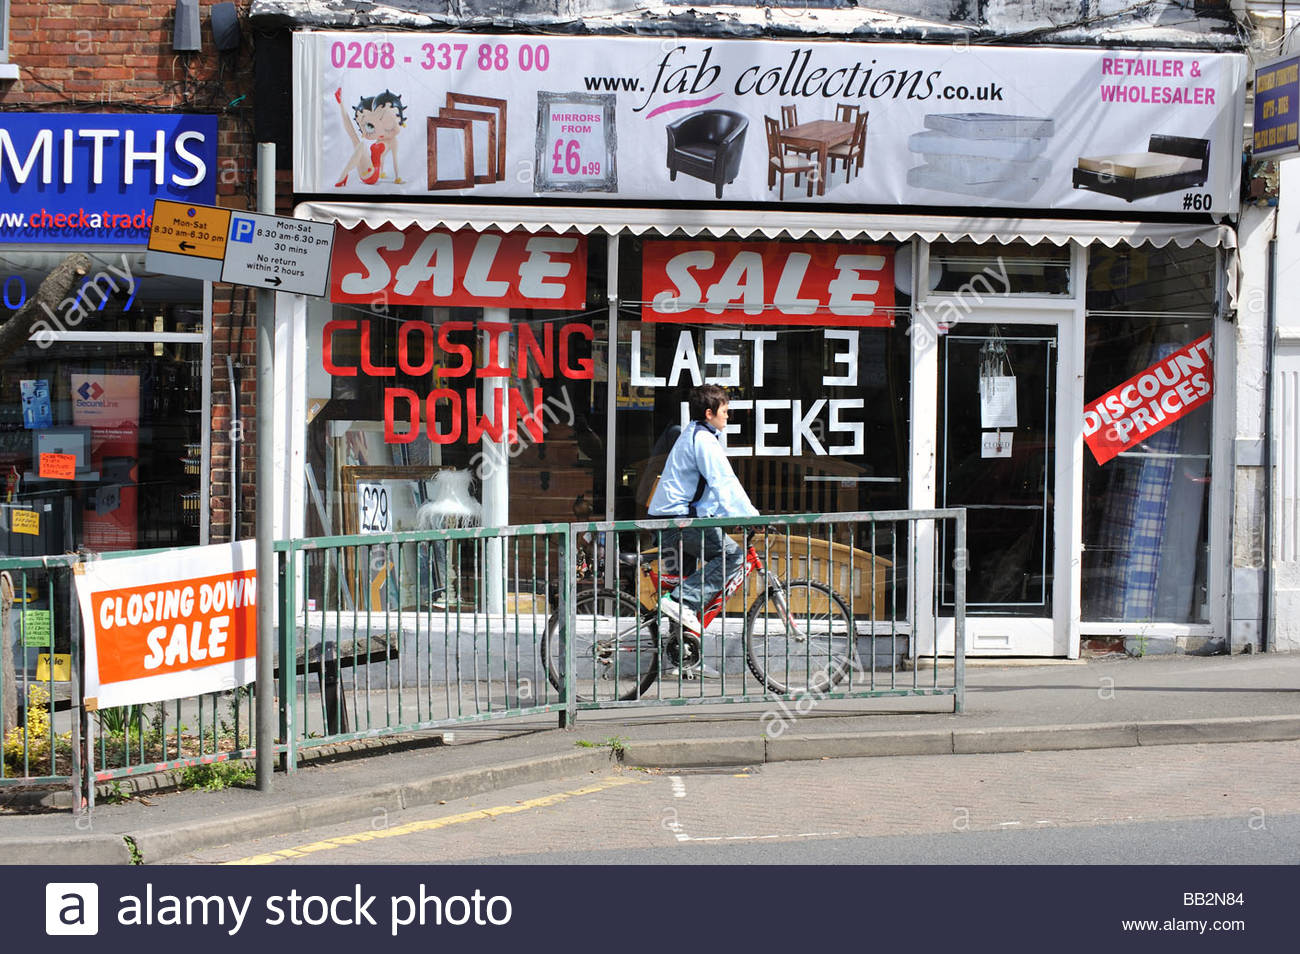 UK Bicycle Shop Closures Hit Record Levels